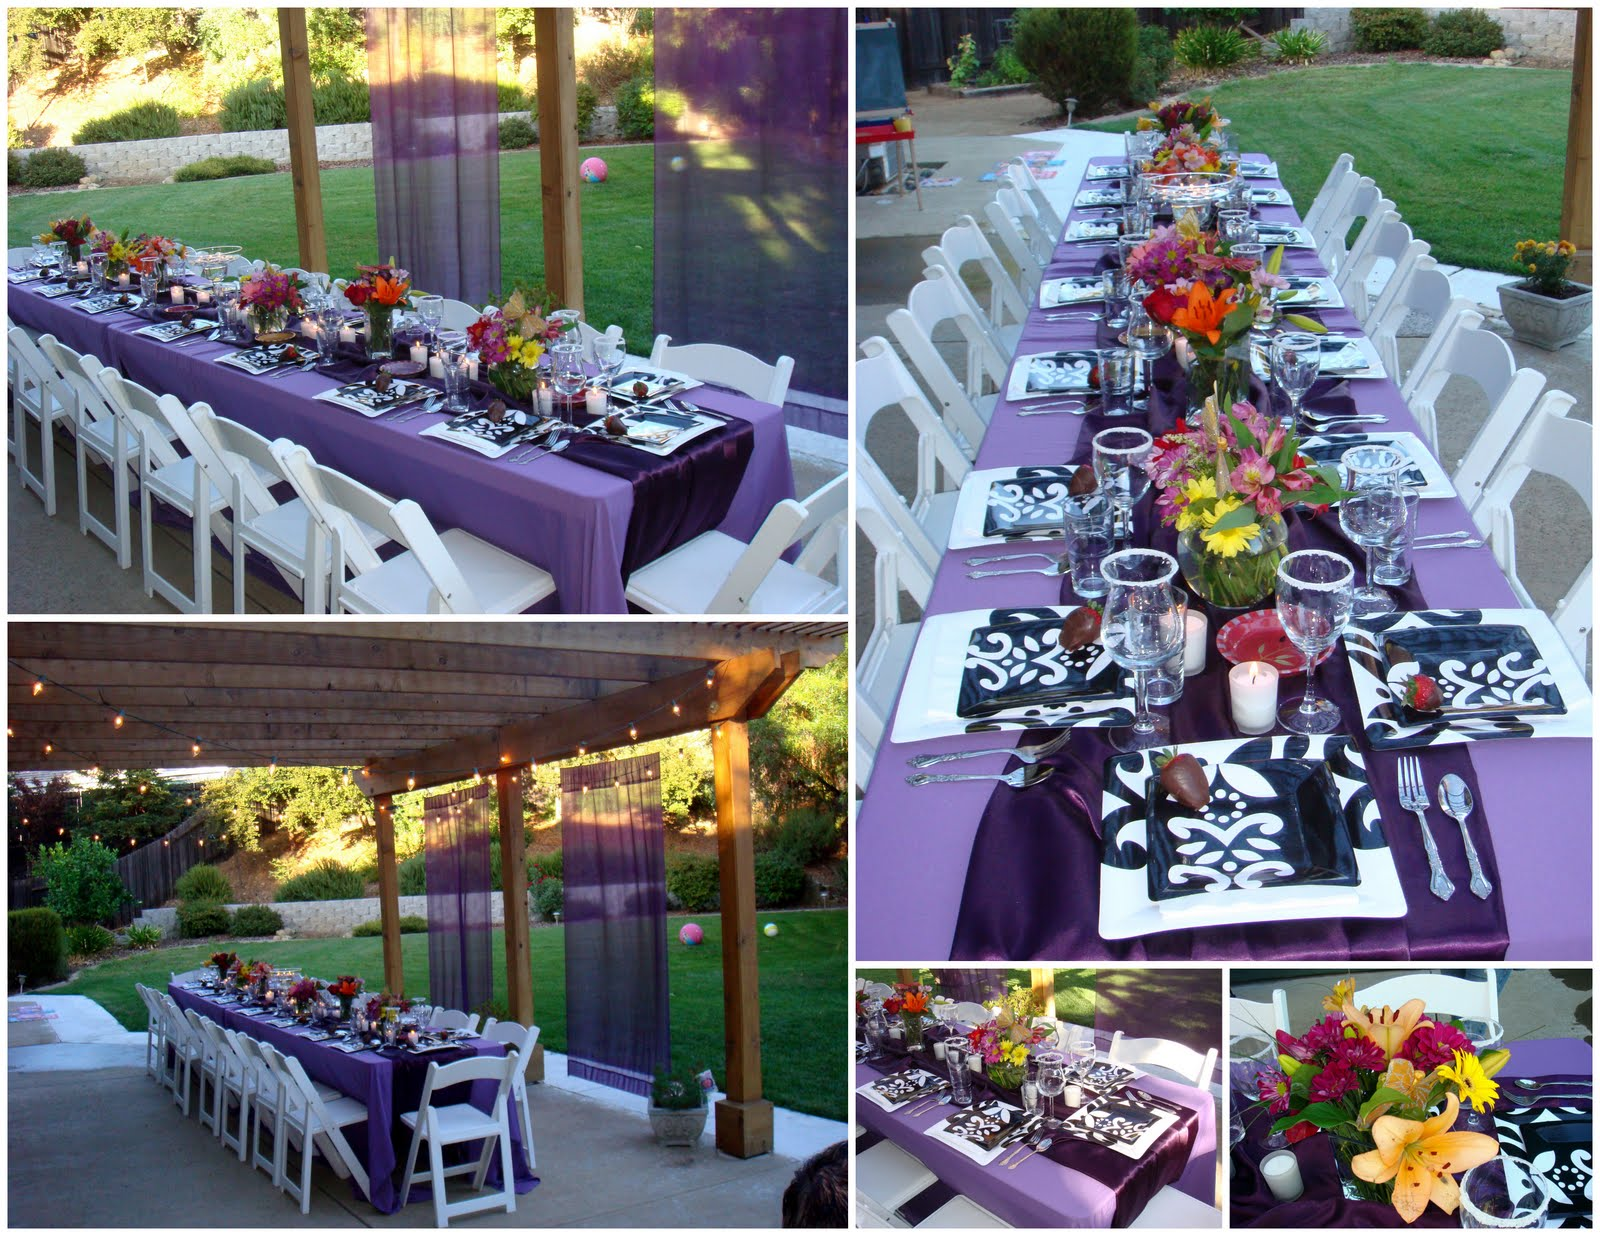 Centerpieces For Outdoor Graduation Party :  Graduation Ideas, Graduation Party Ideas, Graduation 2013, Grad Party